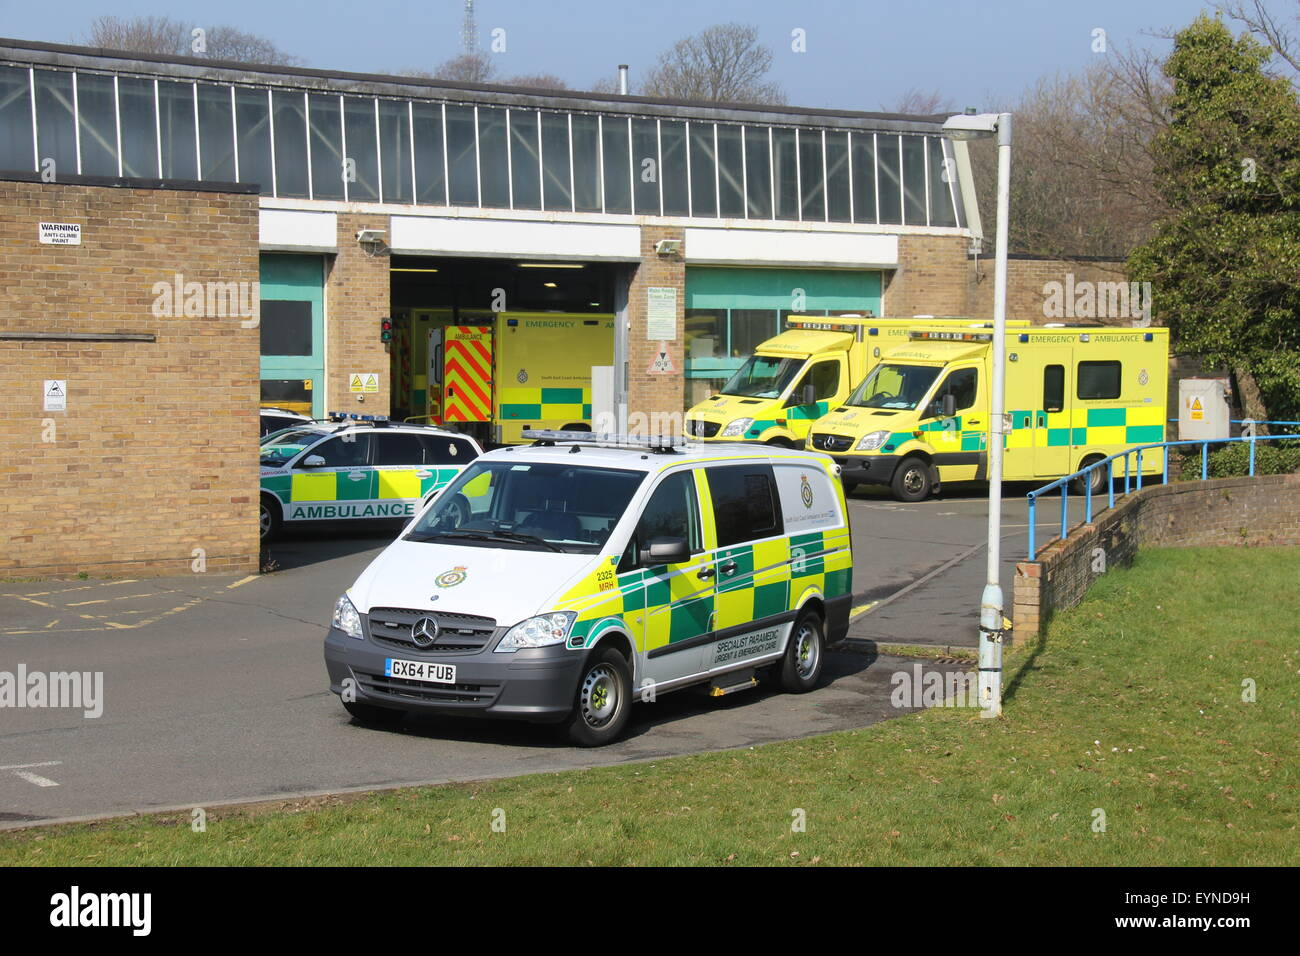 A sunny picture of the South East Coast Ambulance station in Hastings with paramedic and ambulance vehicles in view - Stock Image